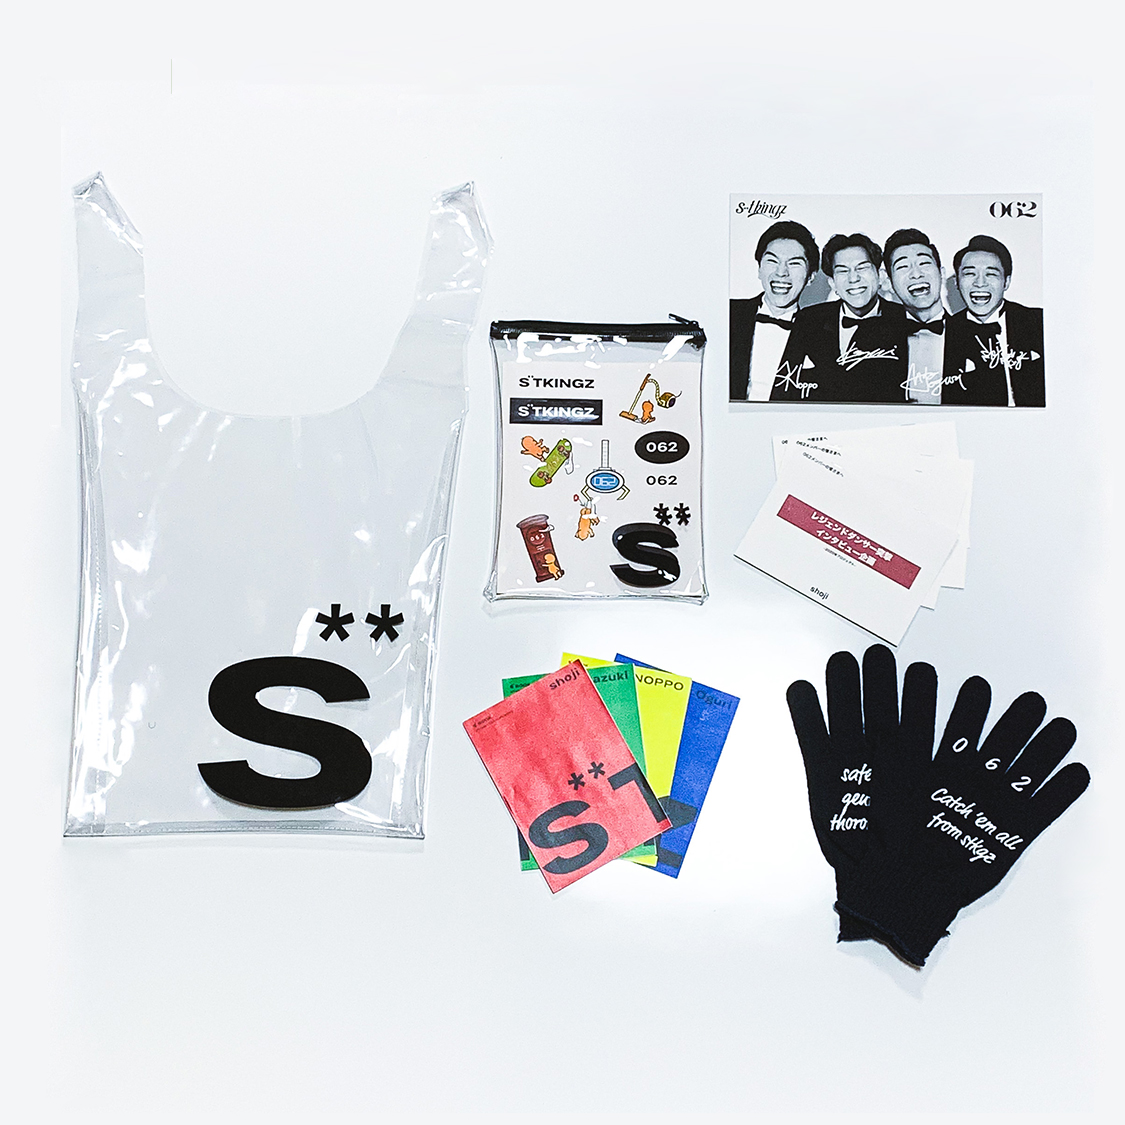 s**t kingz Official Year Goods 062